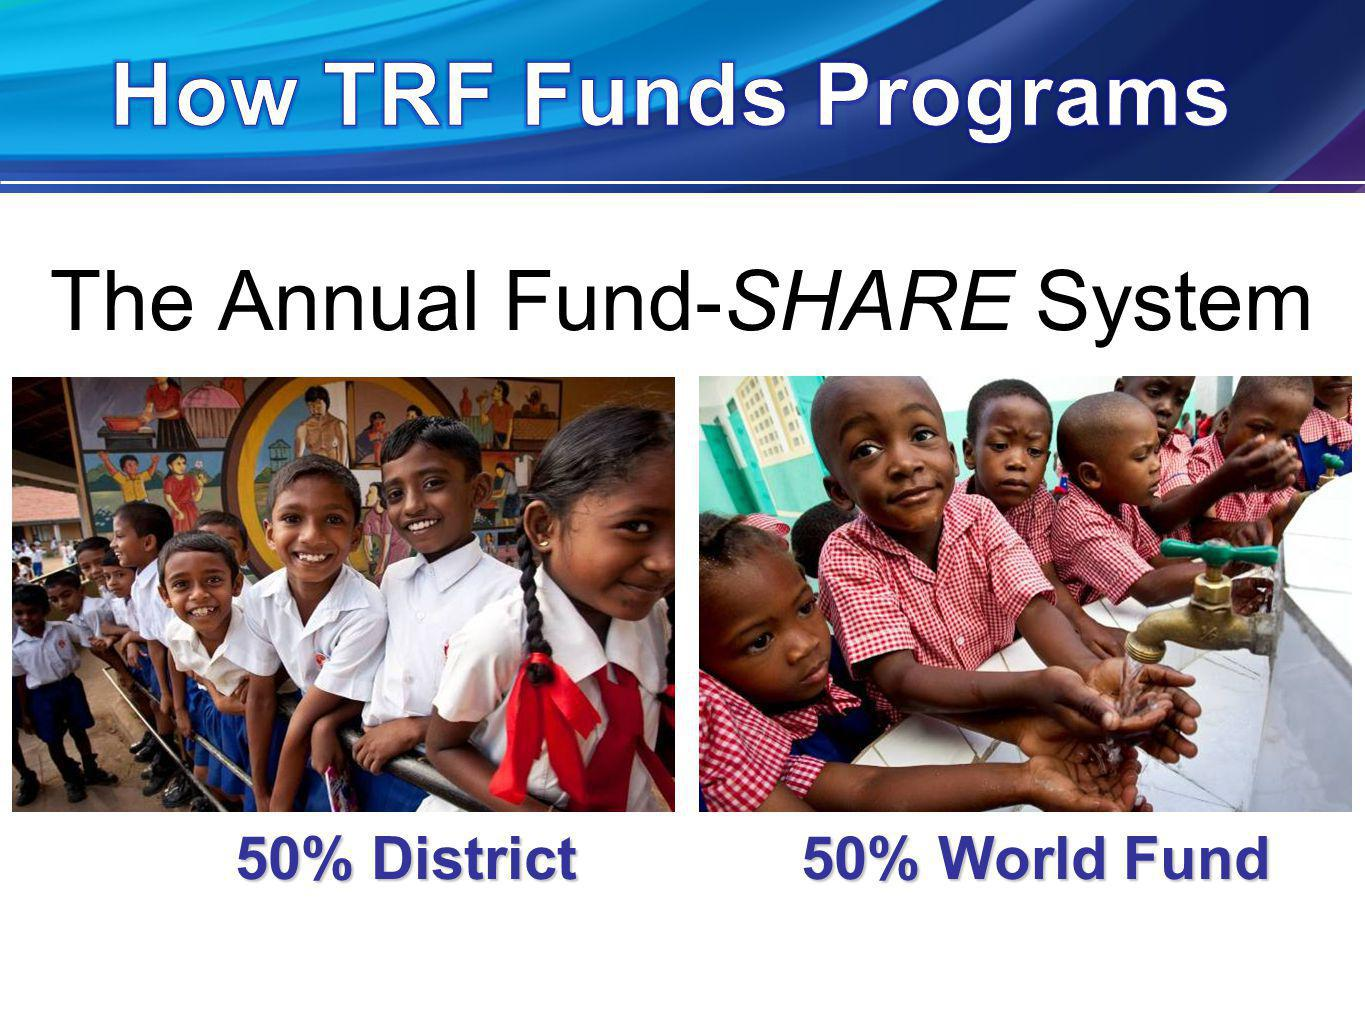 The Annual Fund-SHARE System 50% District 50% World Fund 50% District 50% World Fund